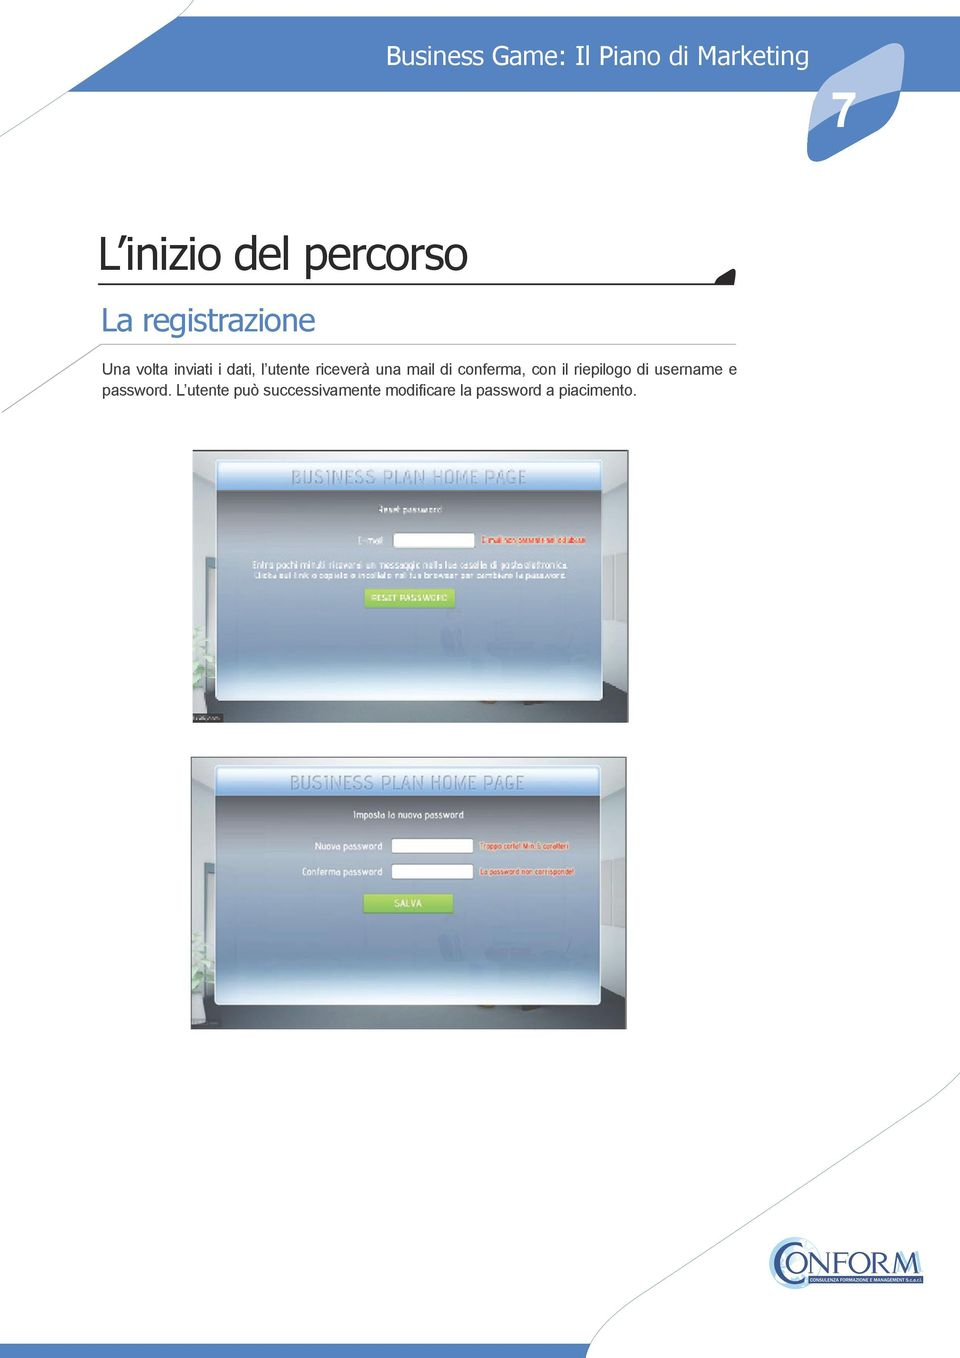 conferma, con il riepilogo di username e password.